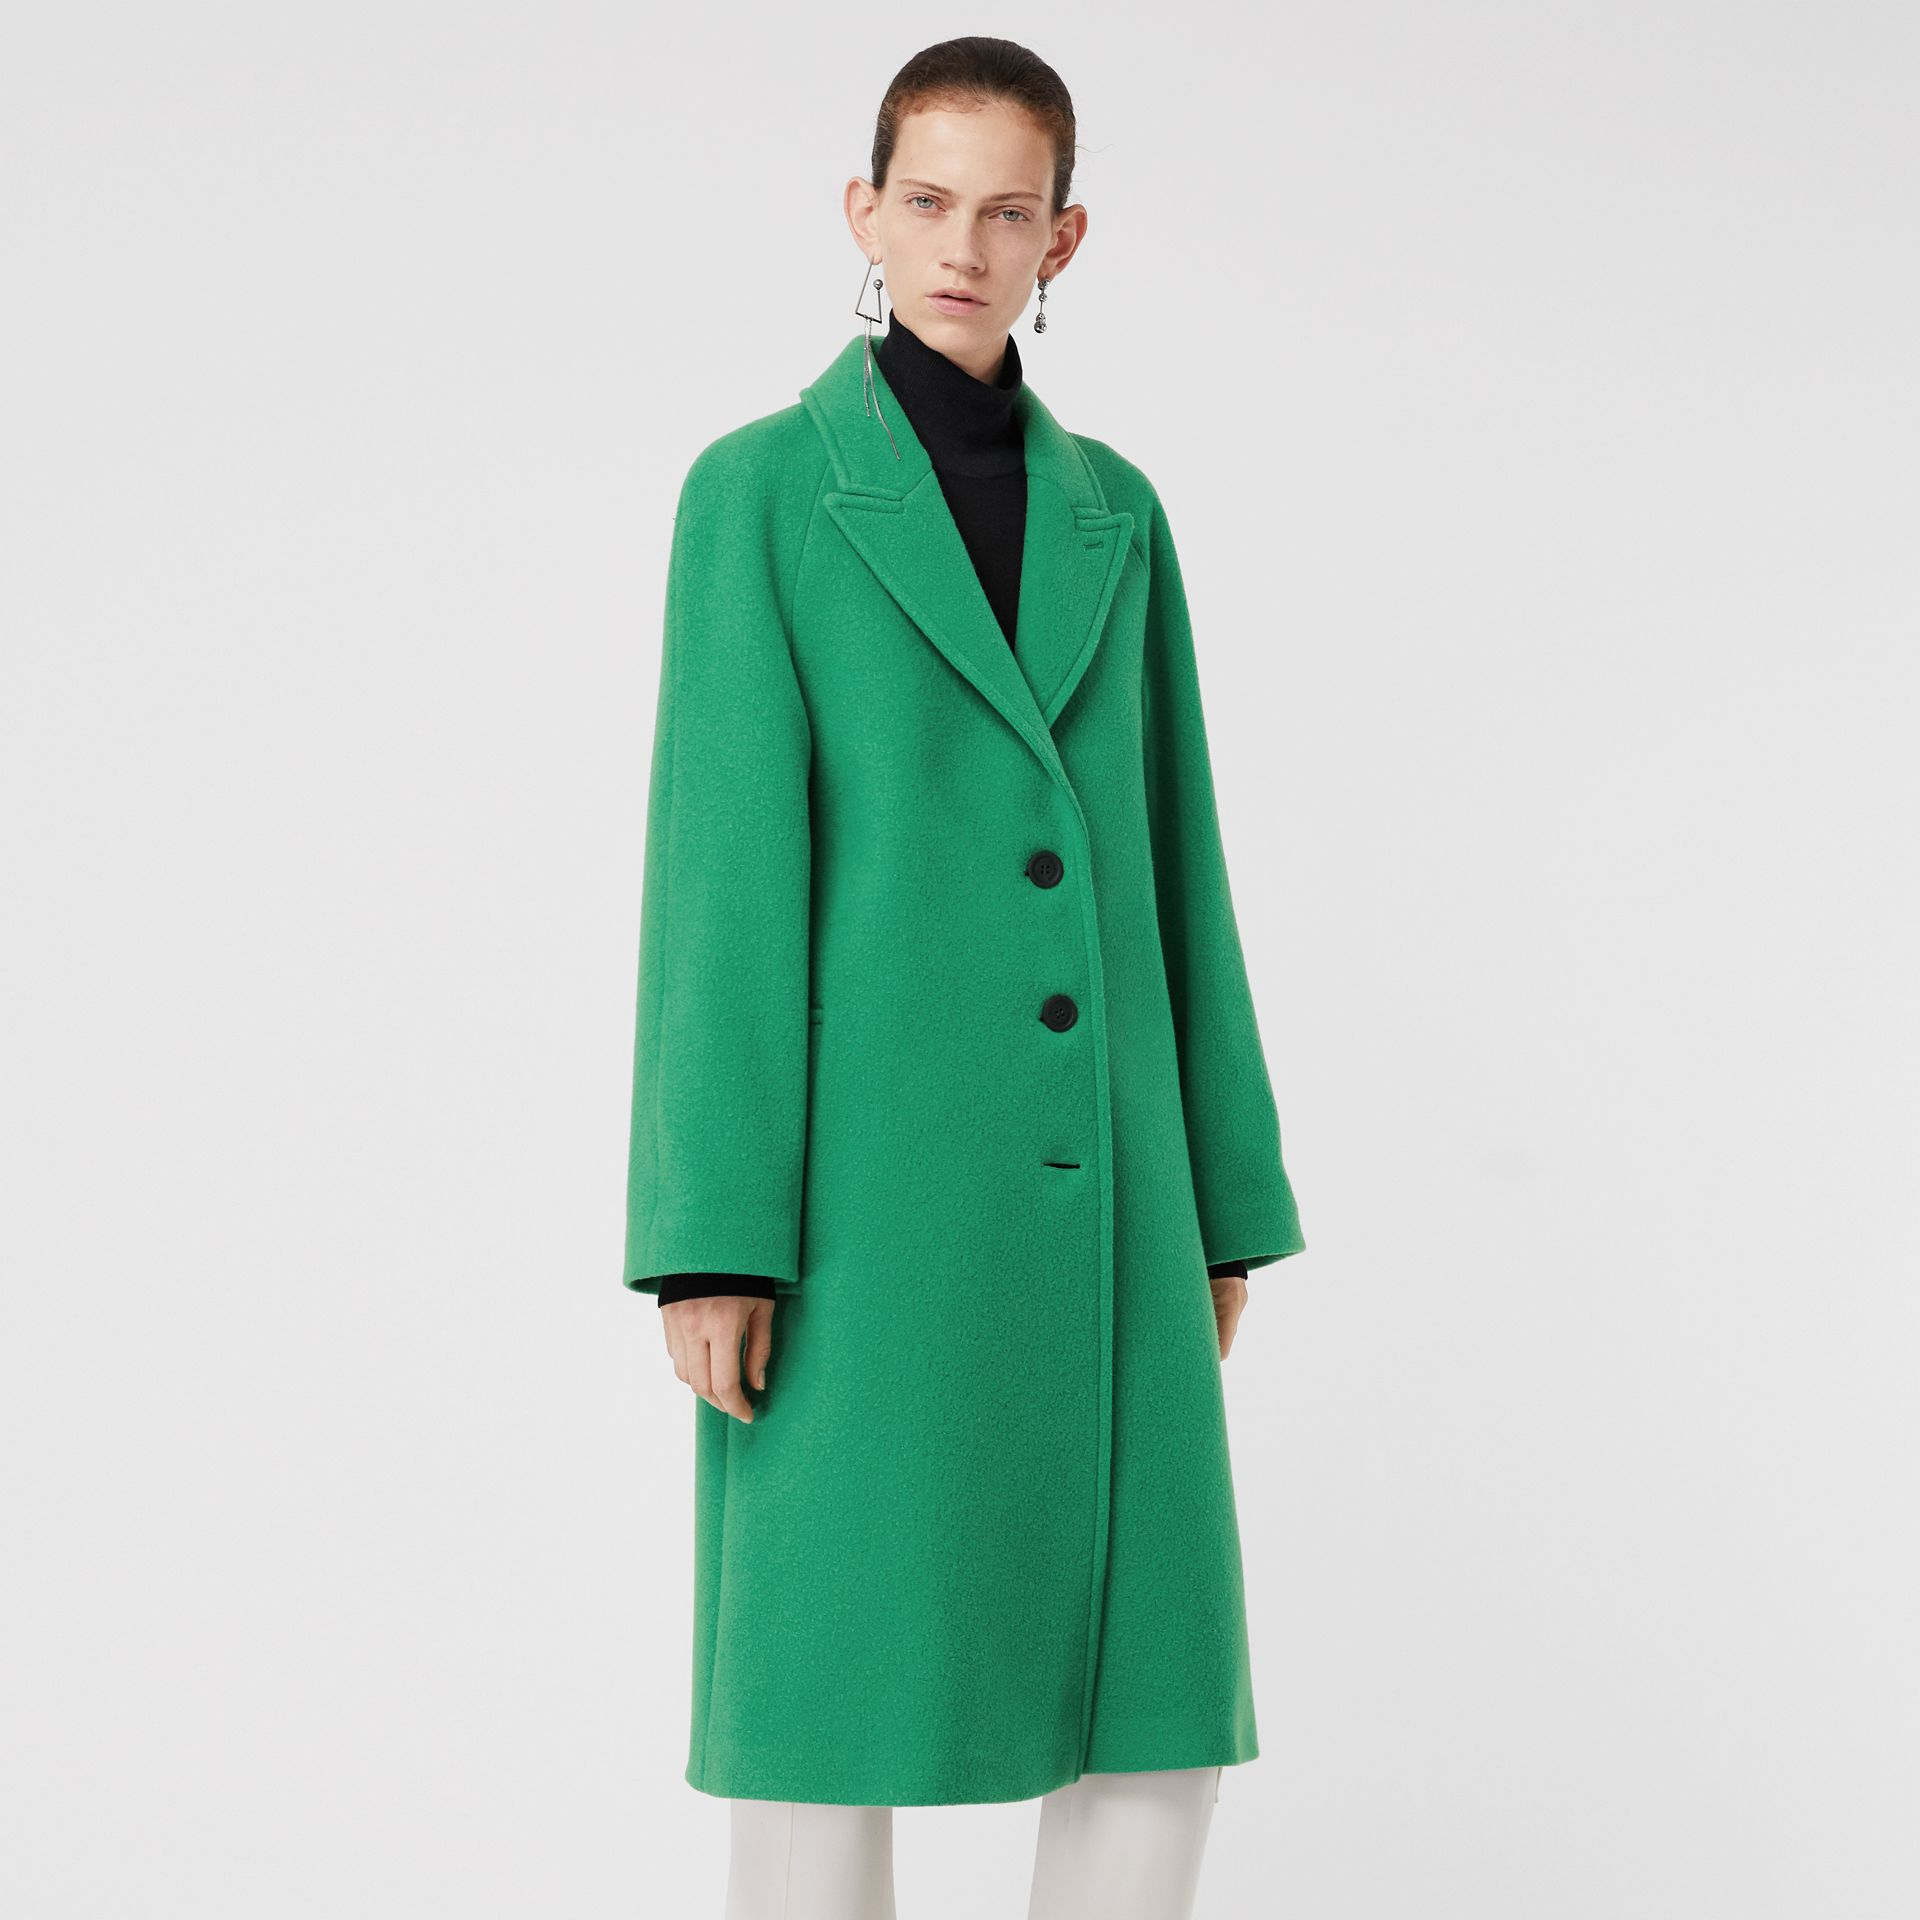 Wool Blend Tailored Coat in Bright Green - Women | Burberry United Kingdom - gallery image 5